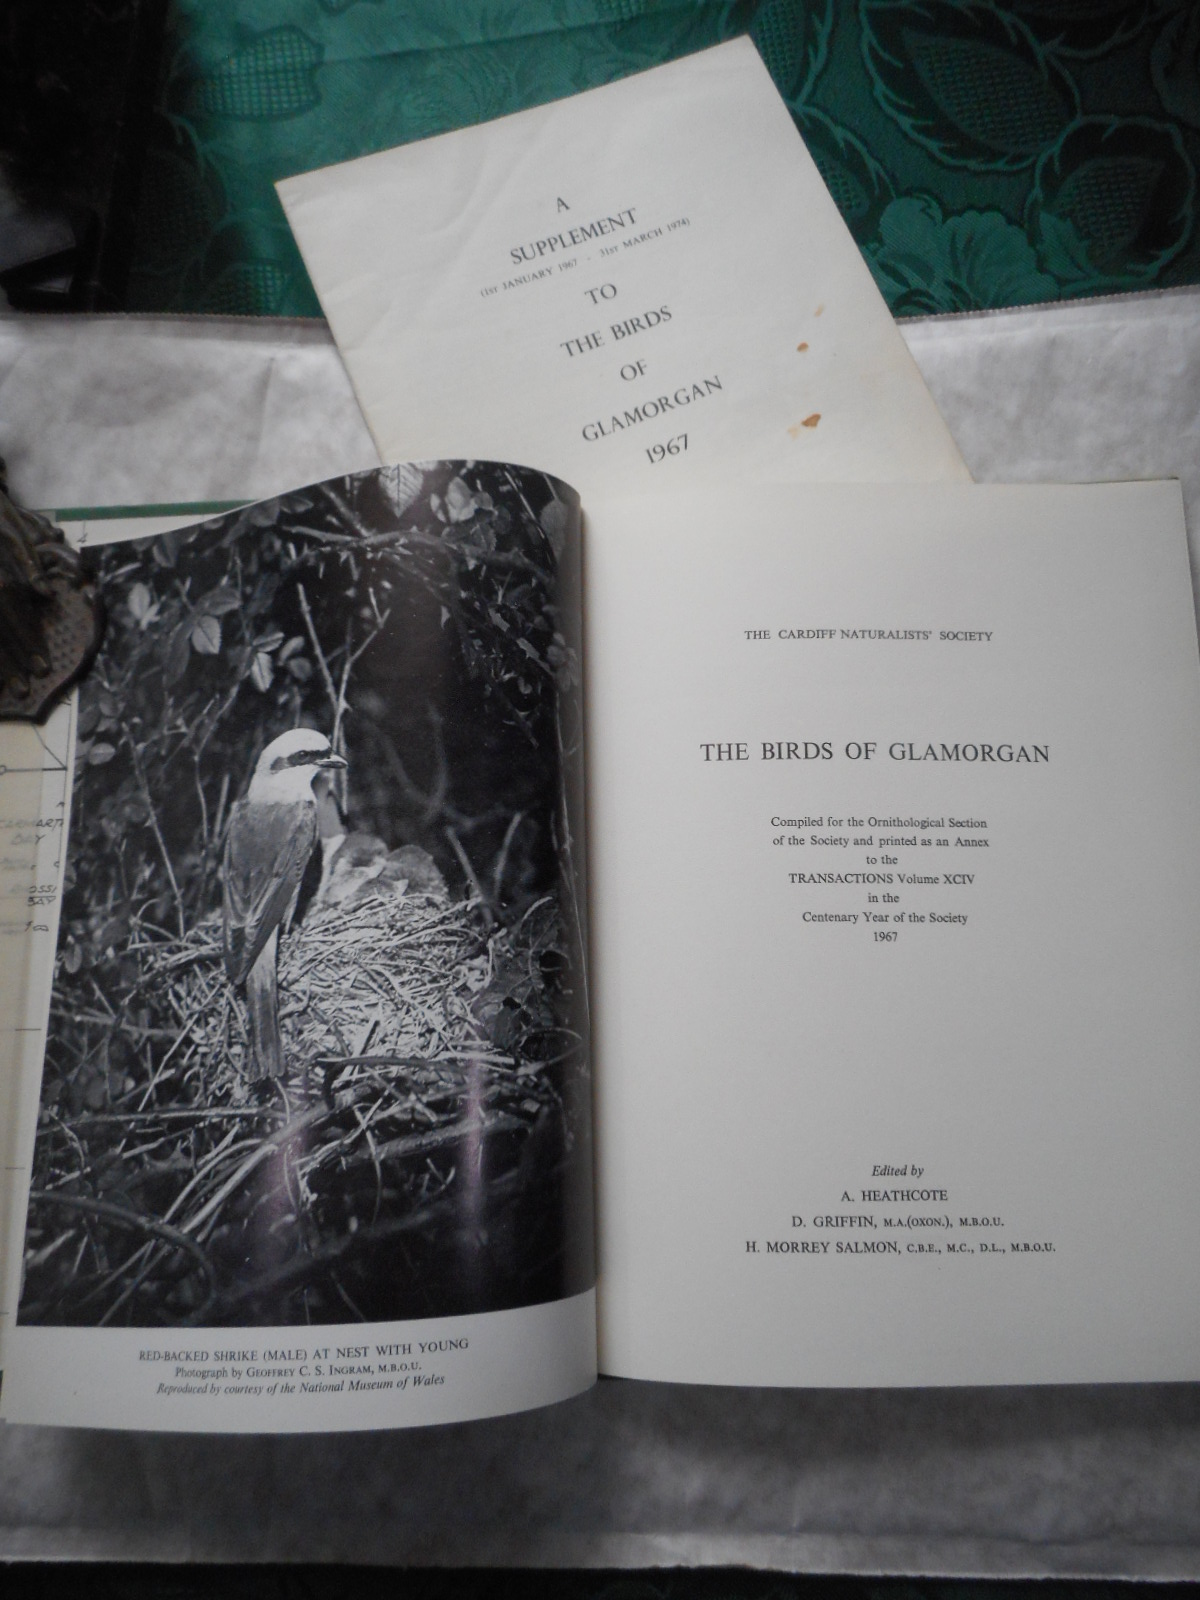 Image for The Birds of Glamorgan. Compiled for the Ornithological Section of the Society and Printed As an Annex to the Transaction Volume XCIV on the Centenary Year of the Society 1967. Plus a Supplement - 1st January 1967 - 31st March 1974.